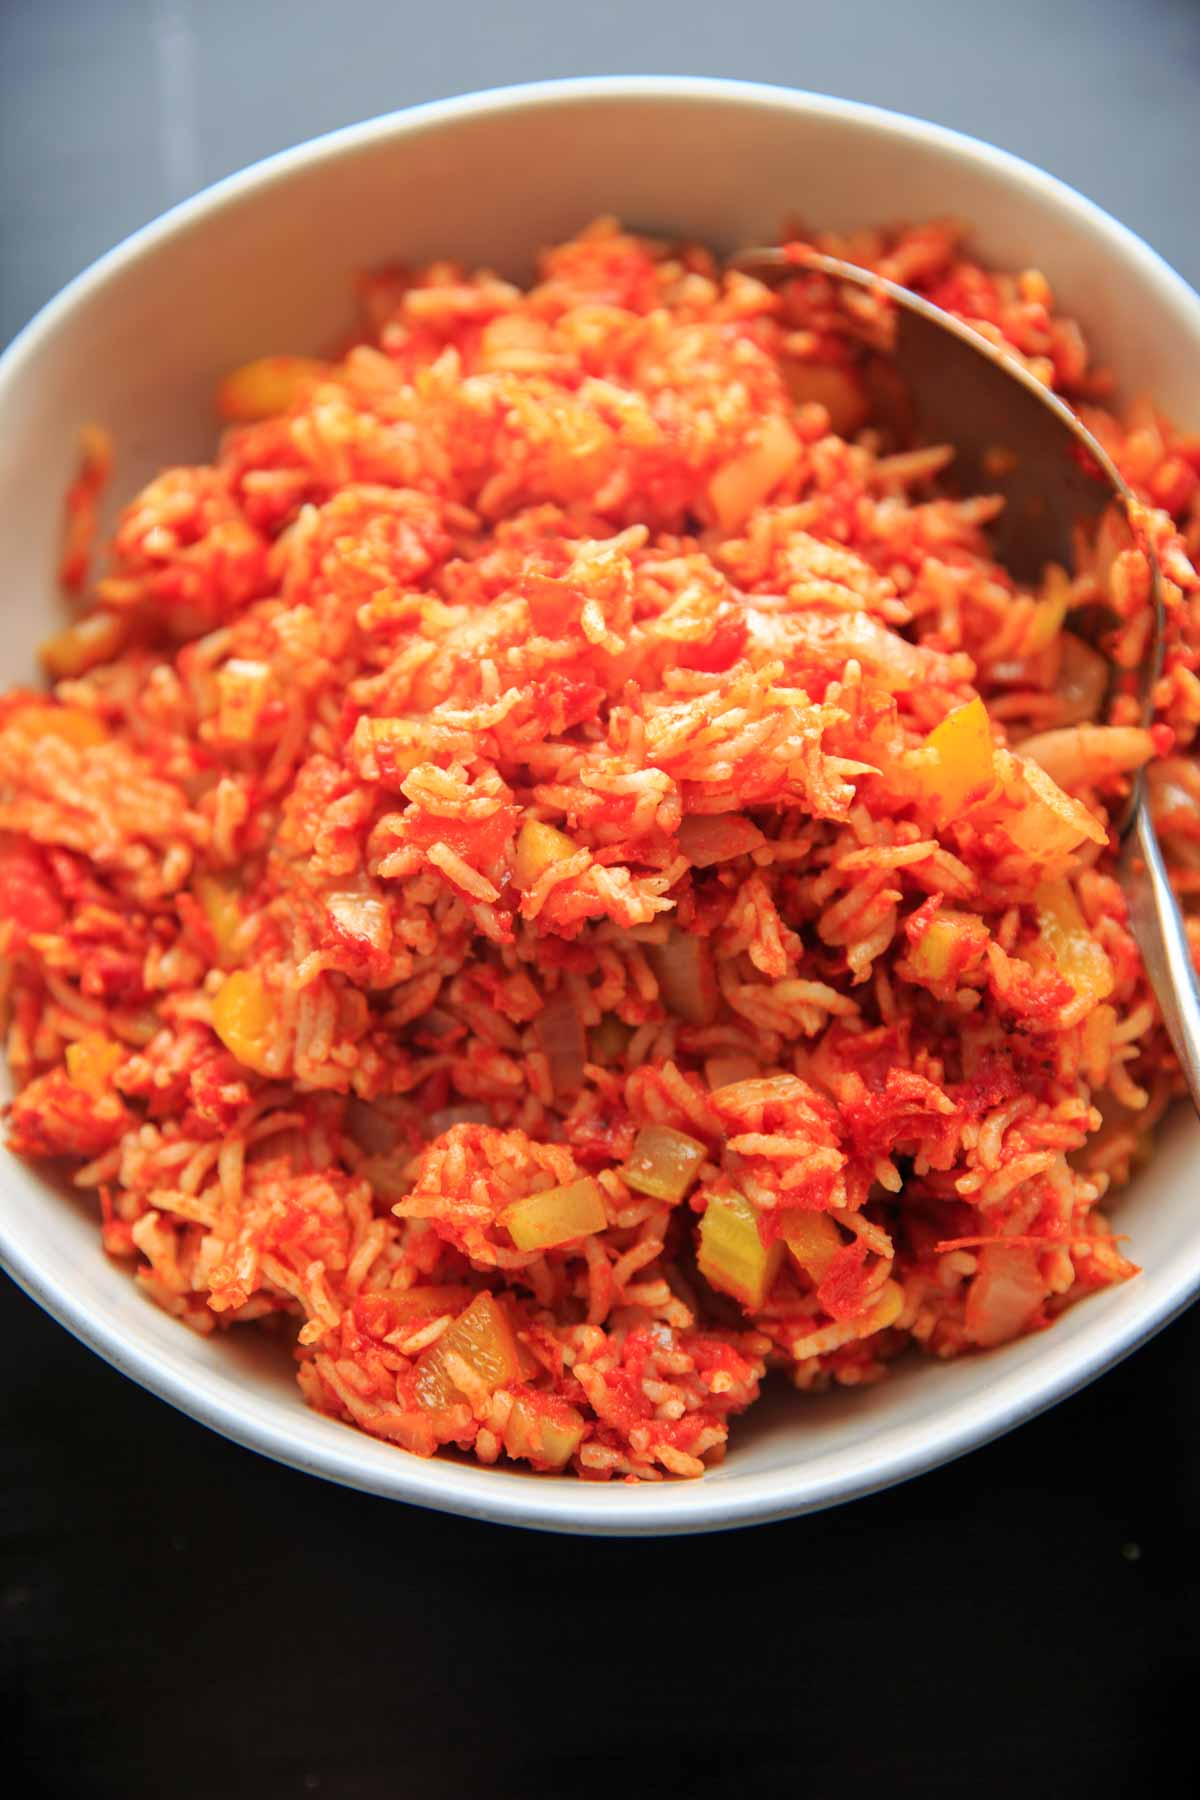 Nana's Spanish Rice recipe - a super easy, one pan / one pot side dish that takes only minutes to throw together. No need to pre-cook the rice! Naturally vegan and gluten-free.